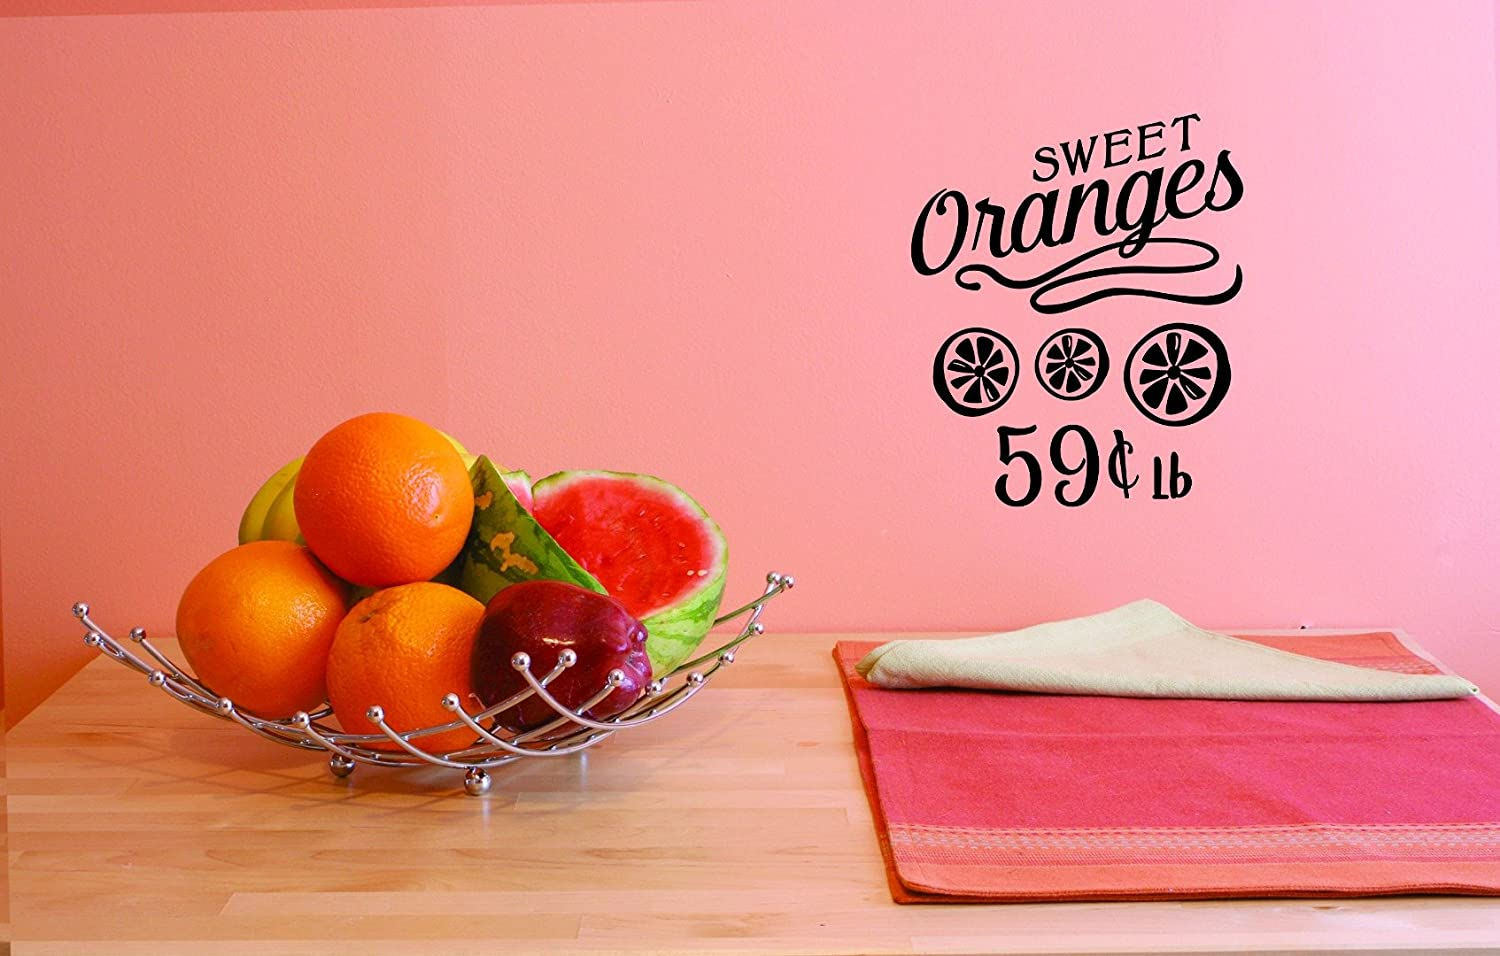 Design with Vinyl JER 1813 1 1 Hot New Decals Sweet Oranges 59 Cents Lb Wall Art Size 12 inches x 18 inches Color 12 x 18 Black